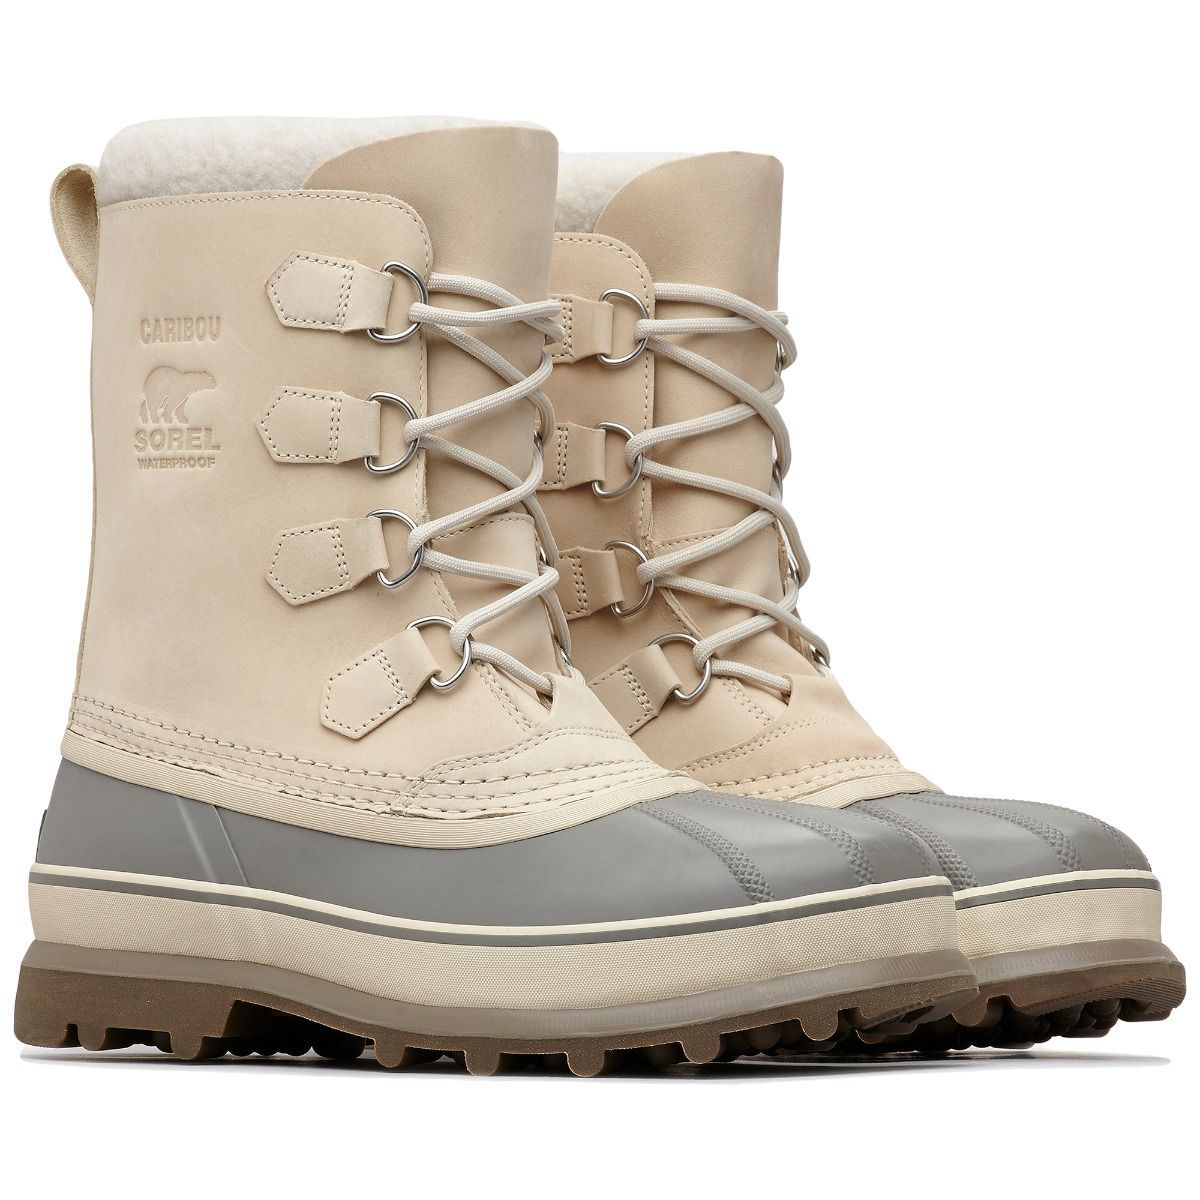 90285f95 The Caribou boot from Sorel is often imitated but never equalled. The  original Sorel boot features a nubuck leather upper with waterproof  construction.